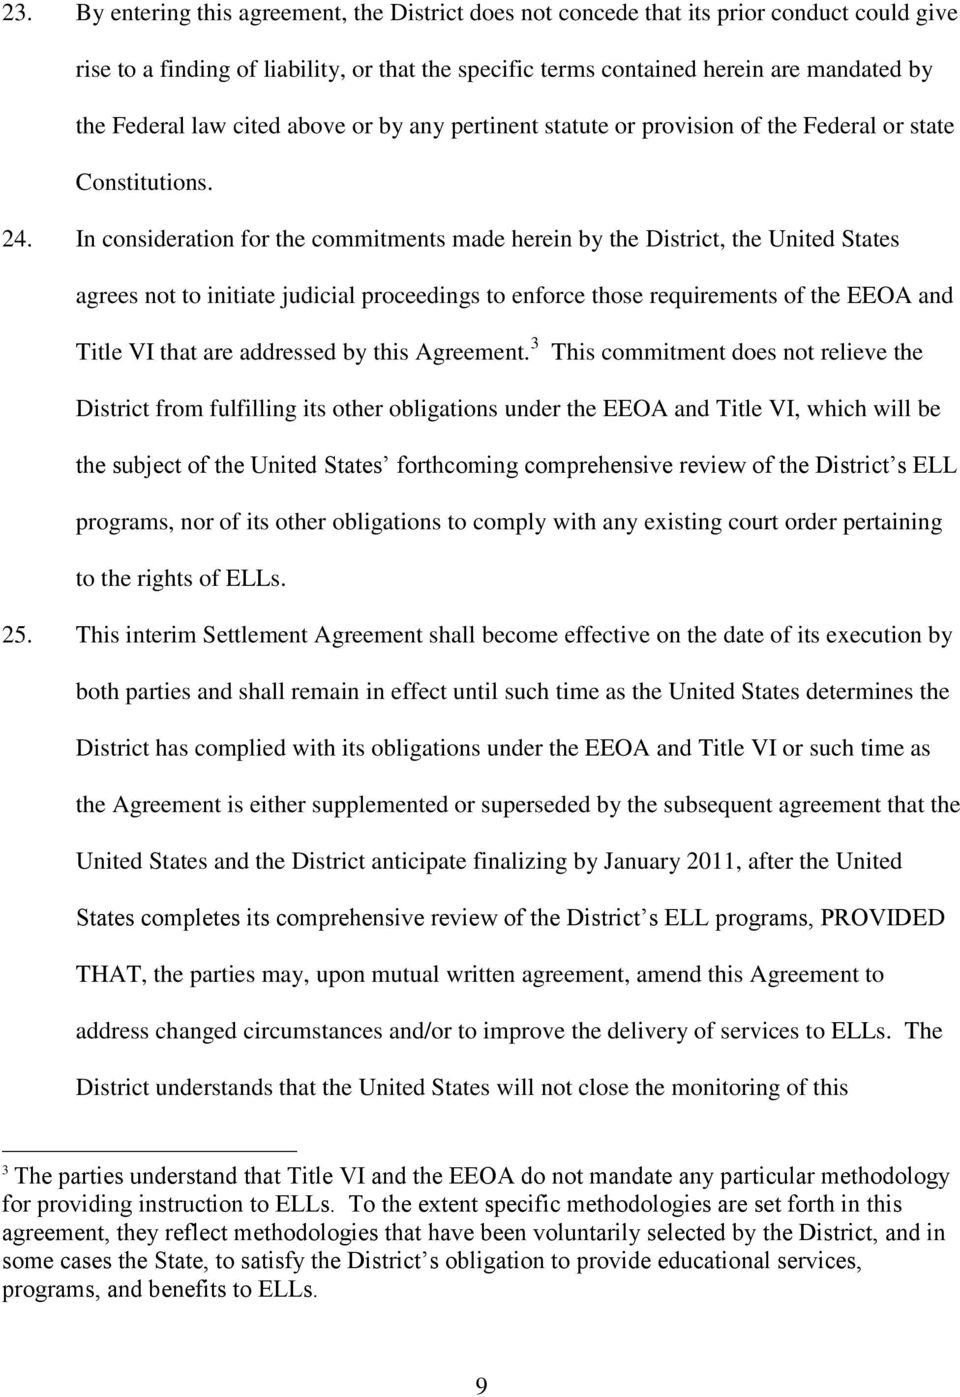 In consideration for the commitments made herein by the District, the United States agrees not to initiate judicial proceedings to enforce those requirements of the EEOA and Title VI that are